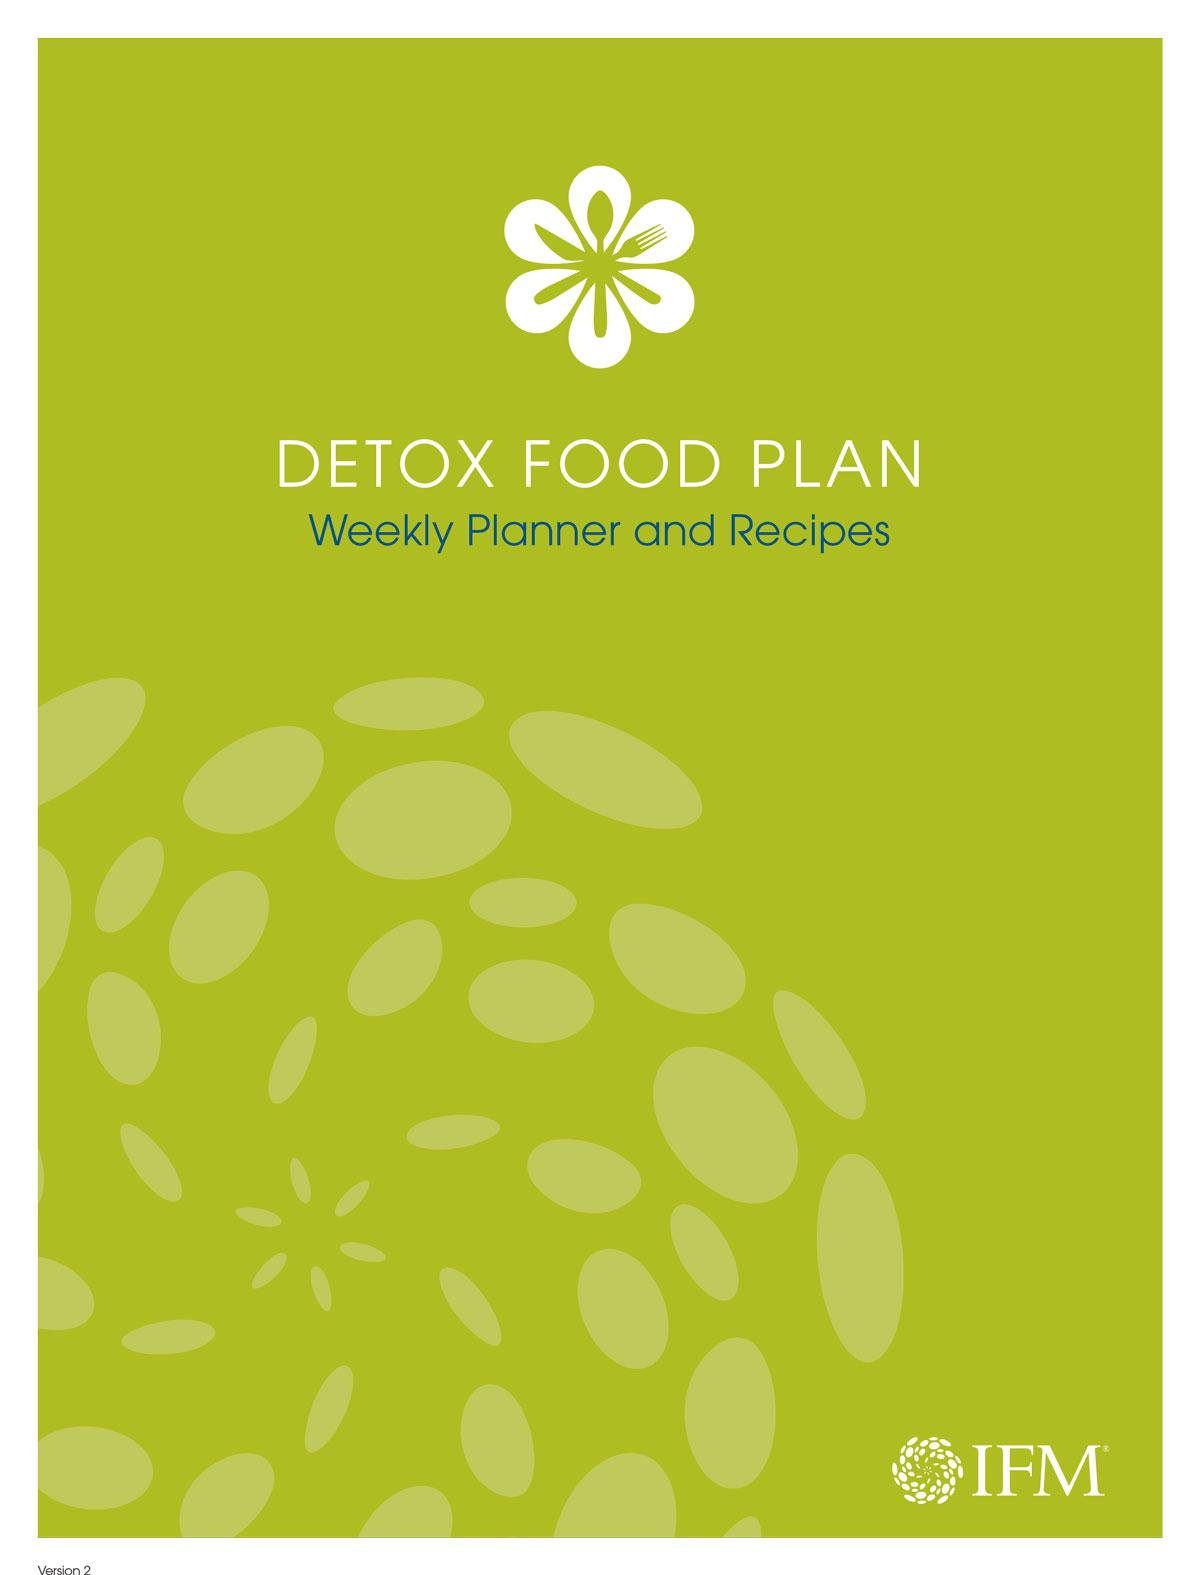 Detox Food Plan Weekly Planner